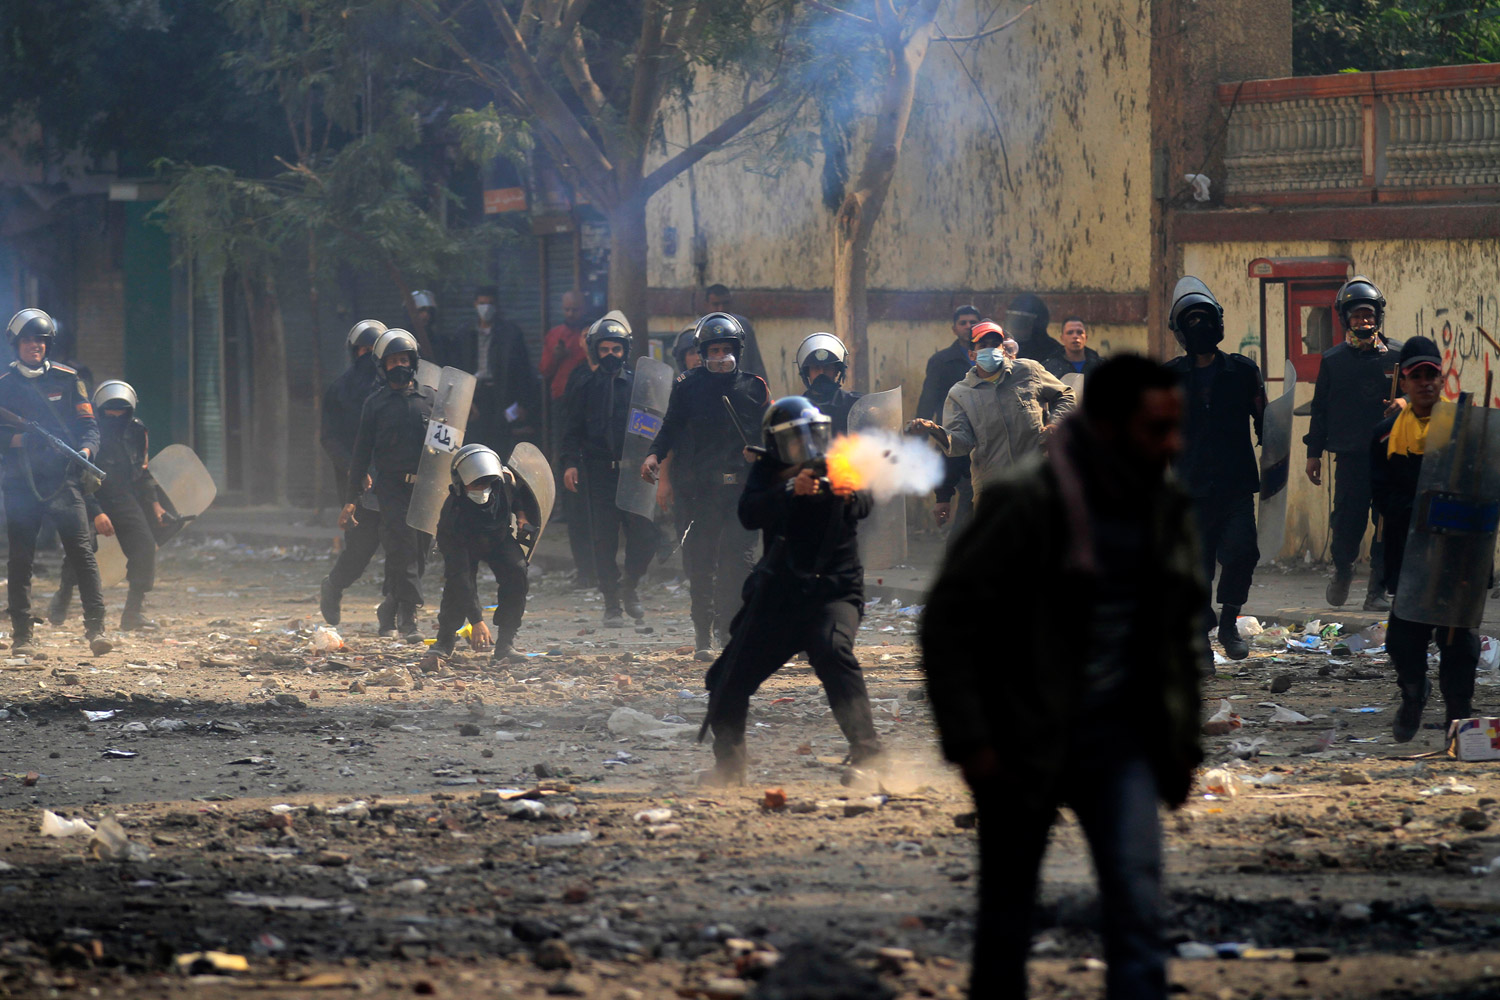 November 22, 2011. An Egyptian riot police officer fires tear gas during clashes with protesters near Tahrir square in Cairo, Egypt. Egypt's civilian cabinet had offered to resign after three days of violent clashes in many cities between demonstrators and security forces, but the action failed to satisfy protesters deeply frustrated with the new military rulers.